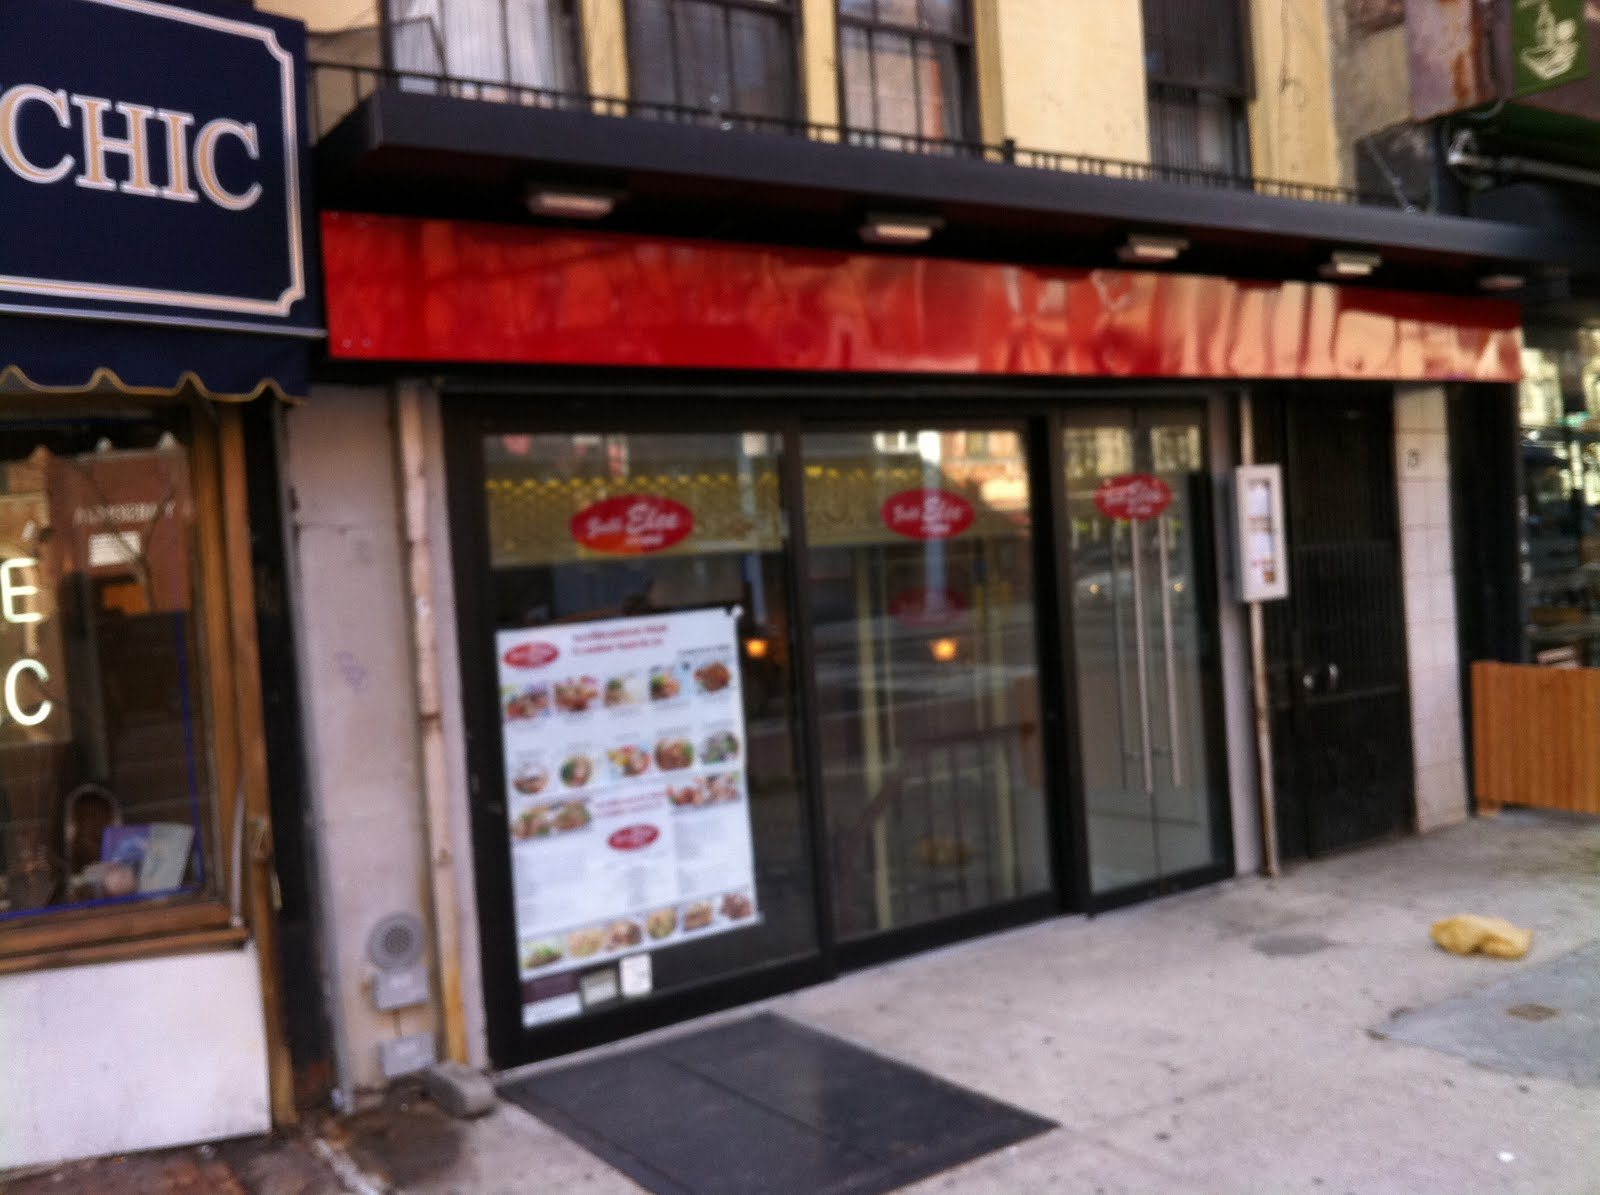 the second outpost of their Northeastern Thai restaurant... (the other is in Jackson Heights). Hmm. And I rather liked Le Da Nang the few times that I ... & EV Grieve: On Second Avenue La Da Nang is suddenly Zabb Elee